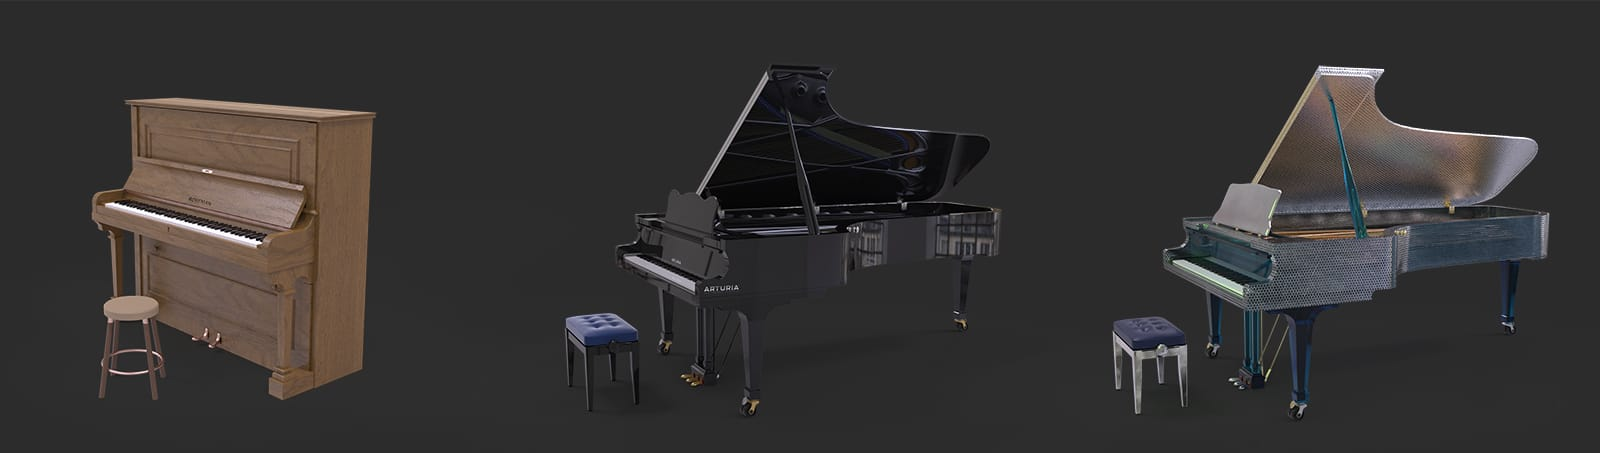 image_piano_models